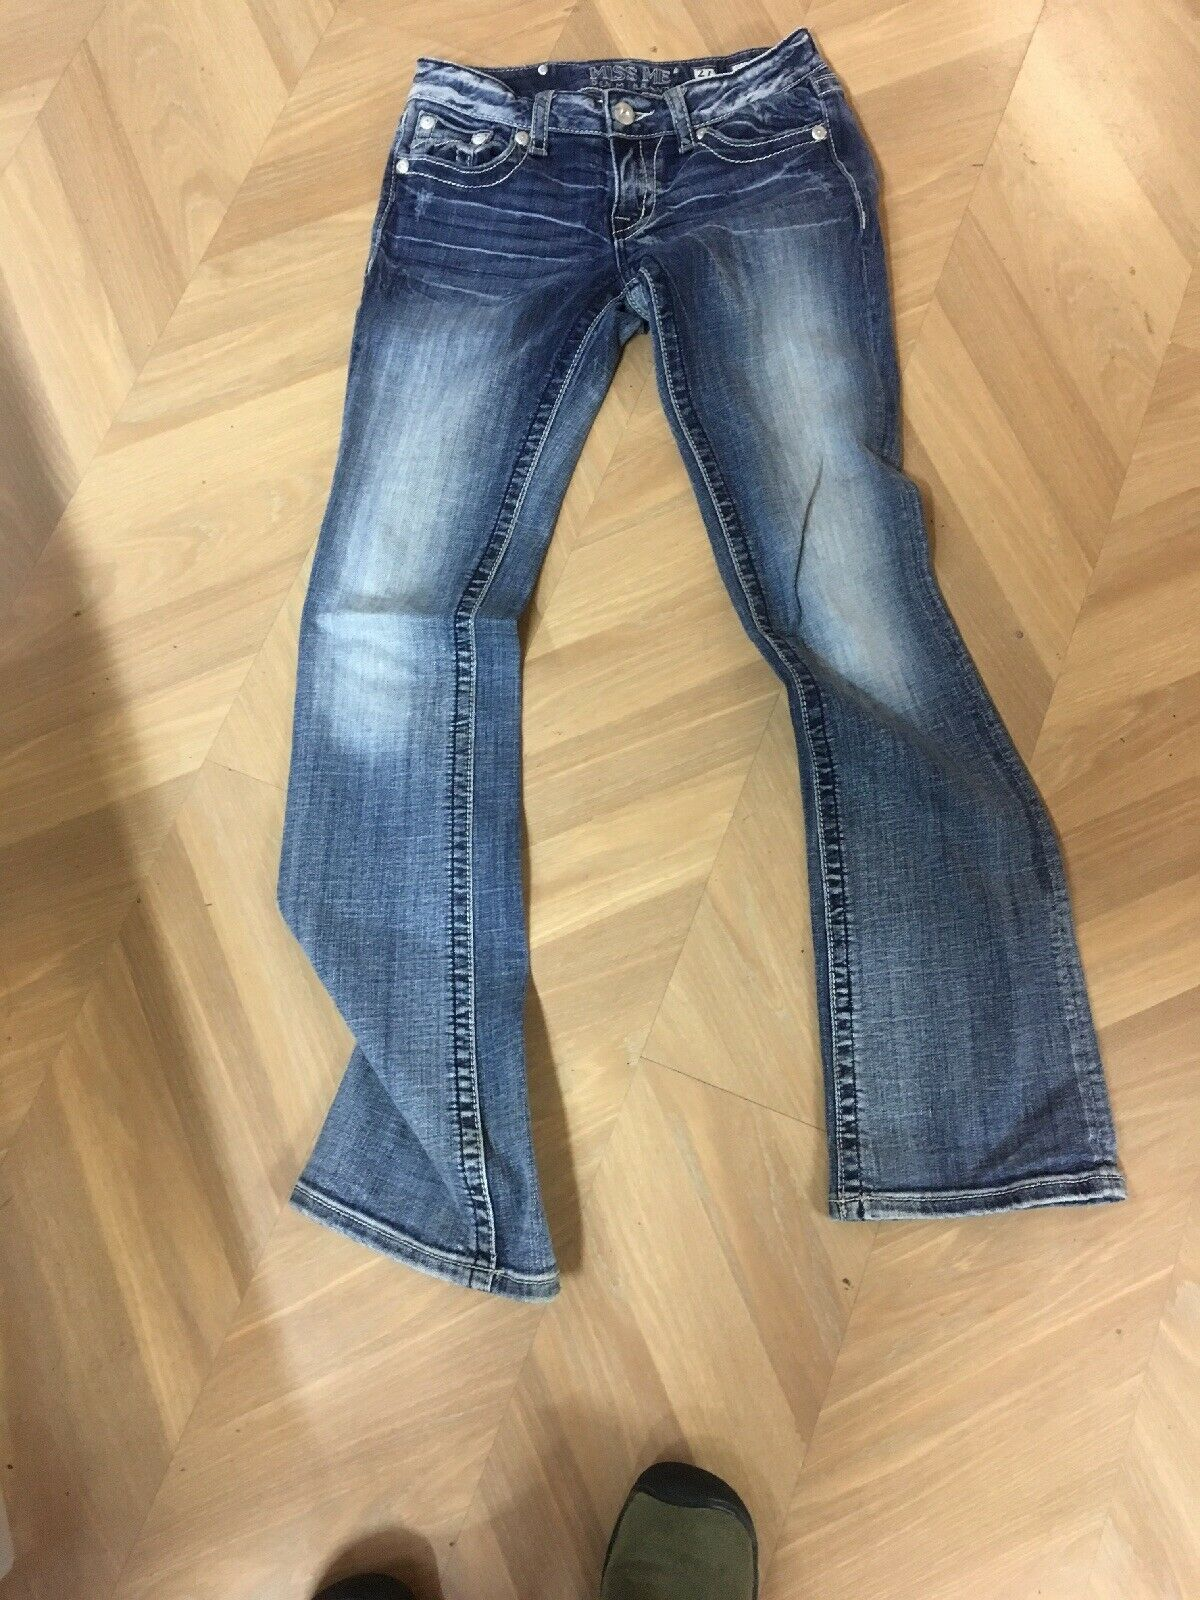 Miss Me Denim Brand jeans 27 JD1039B Boot jeans